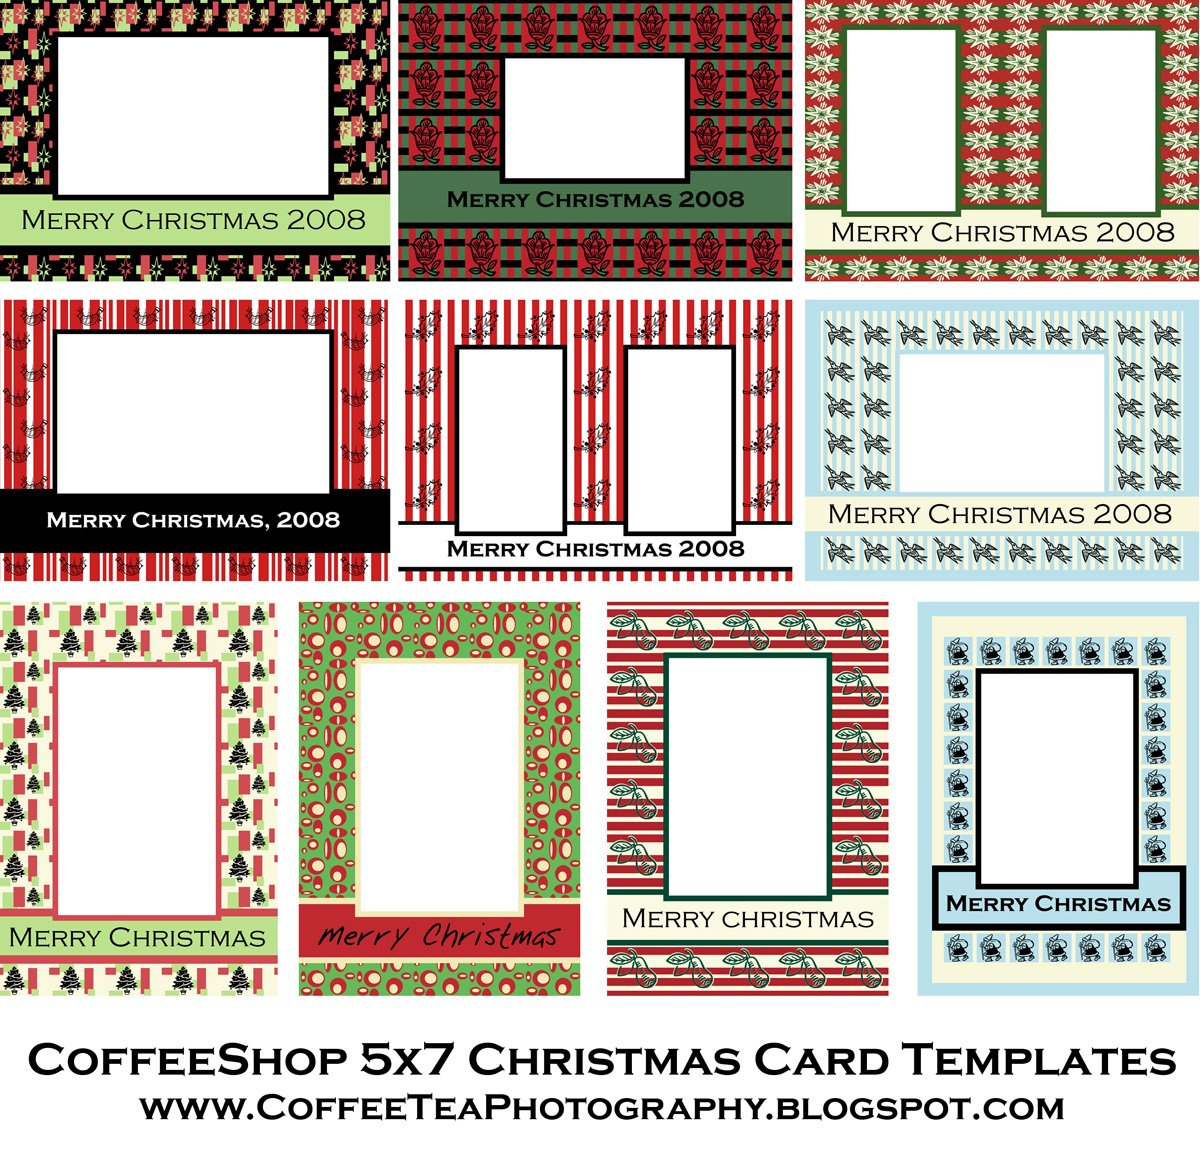 The CoffeeShop Blog: FREE CoffeeShop Christmas Card Templates!